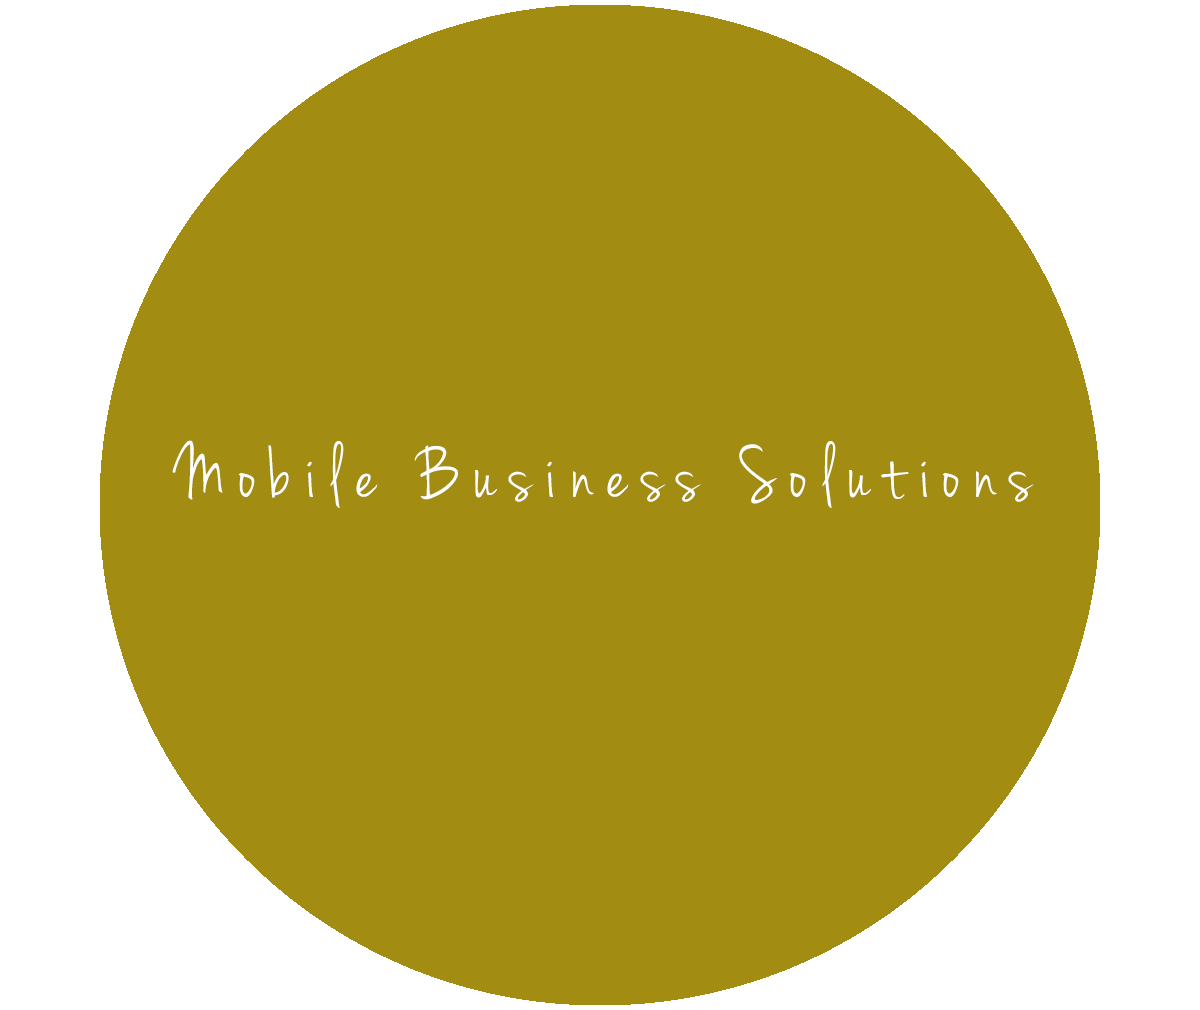 mobilebusinesssolutions.png